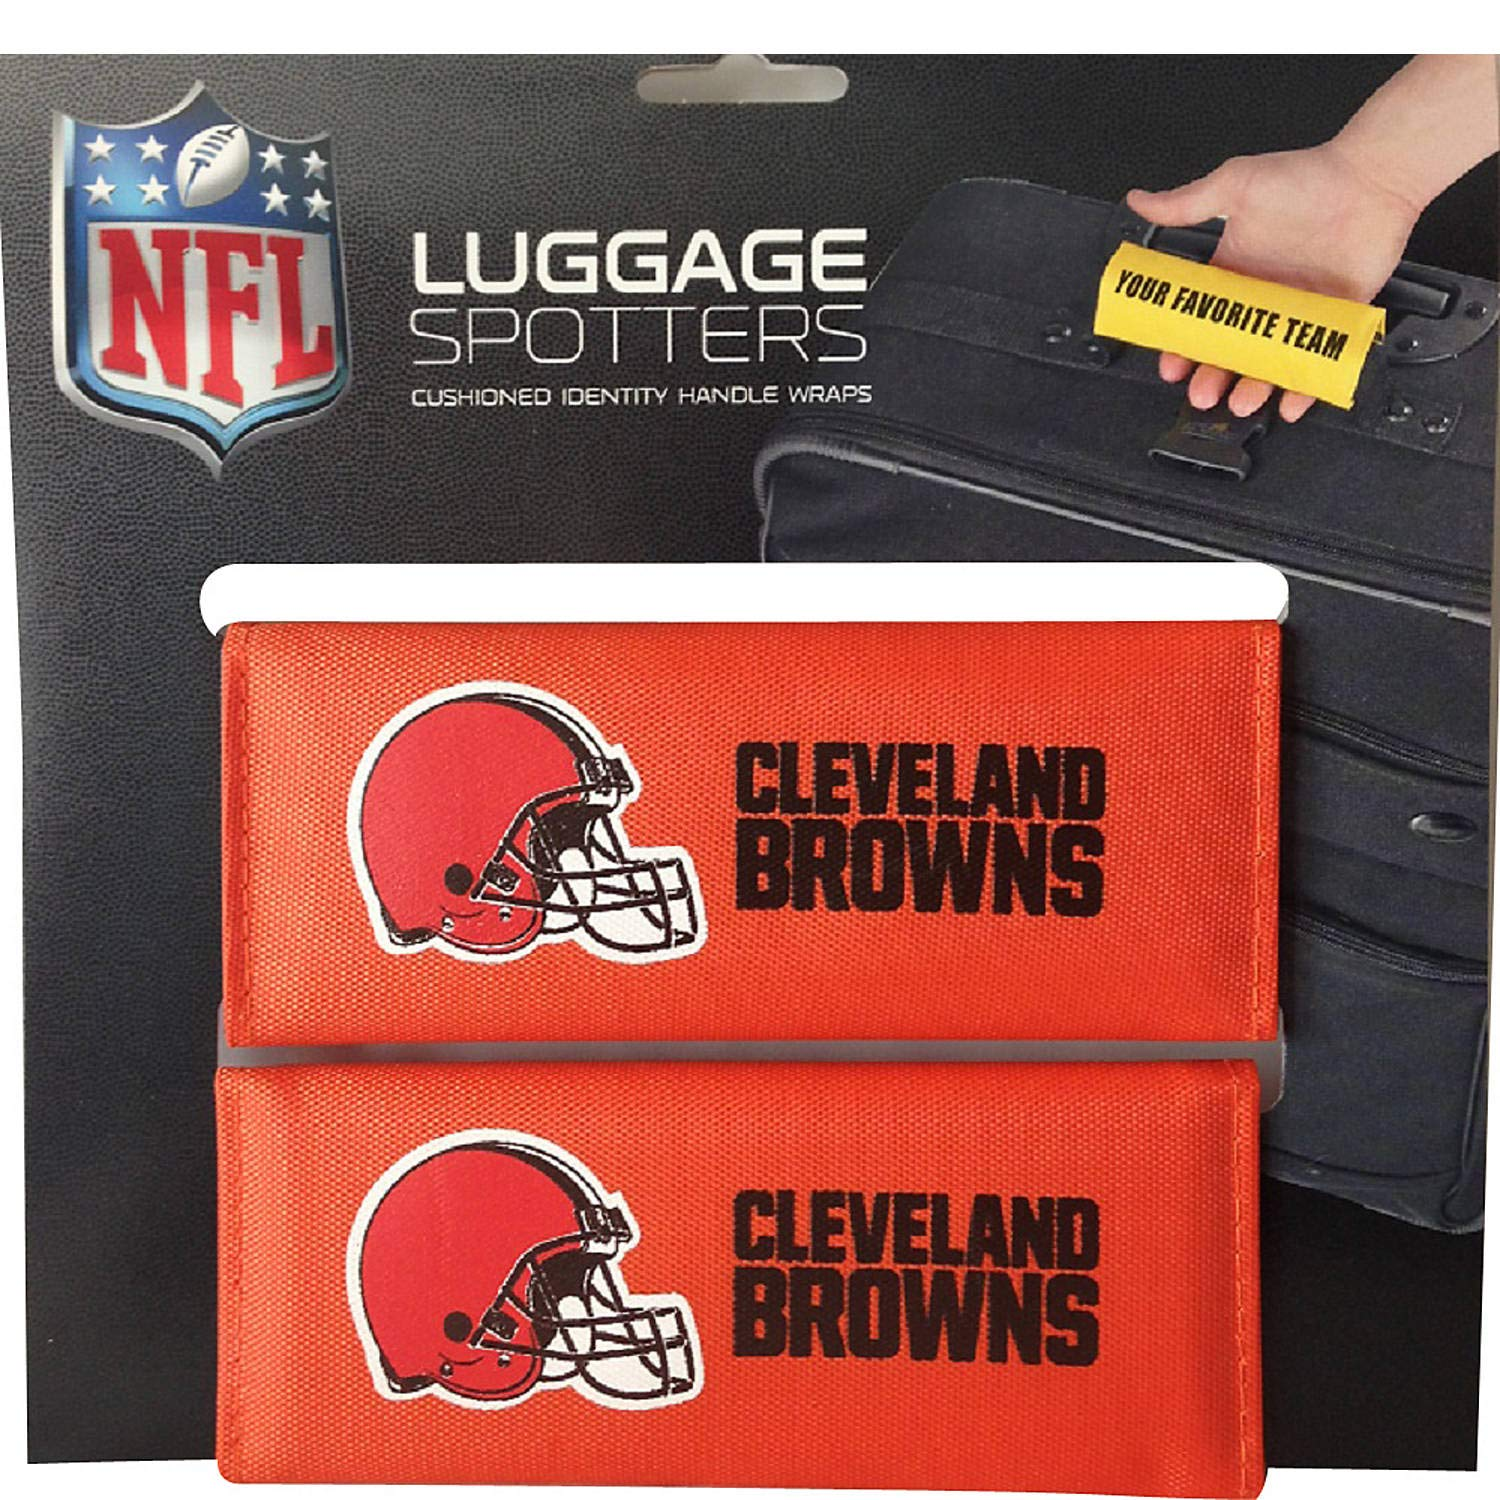 BROWNS Luggage Spotter Suitcase Handle Wrap Bag Tag Locator with I.D. Pocket (2-PK) - CLOSEOUT! ALMOST GONE! Matrix Source CLEVEBROWN